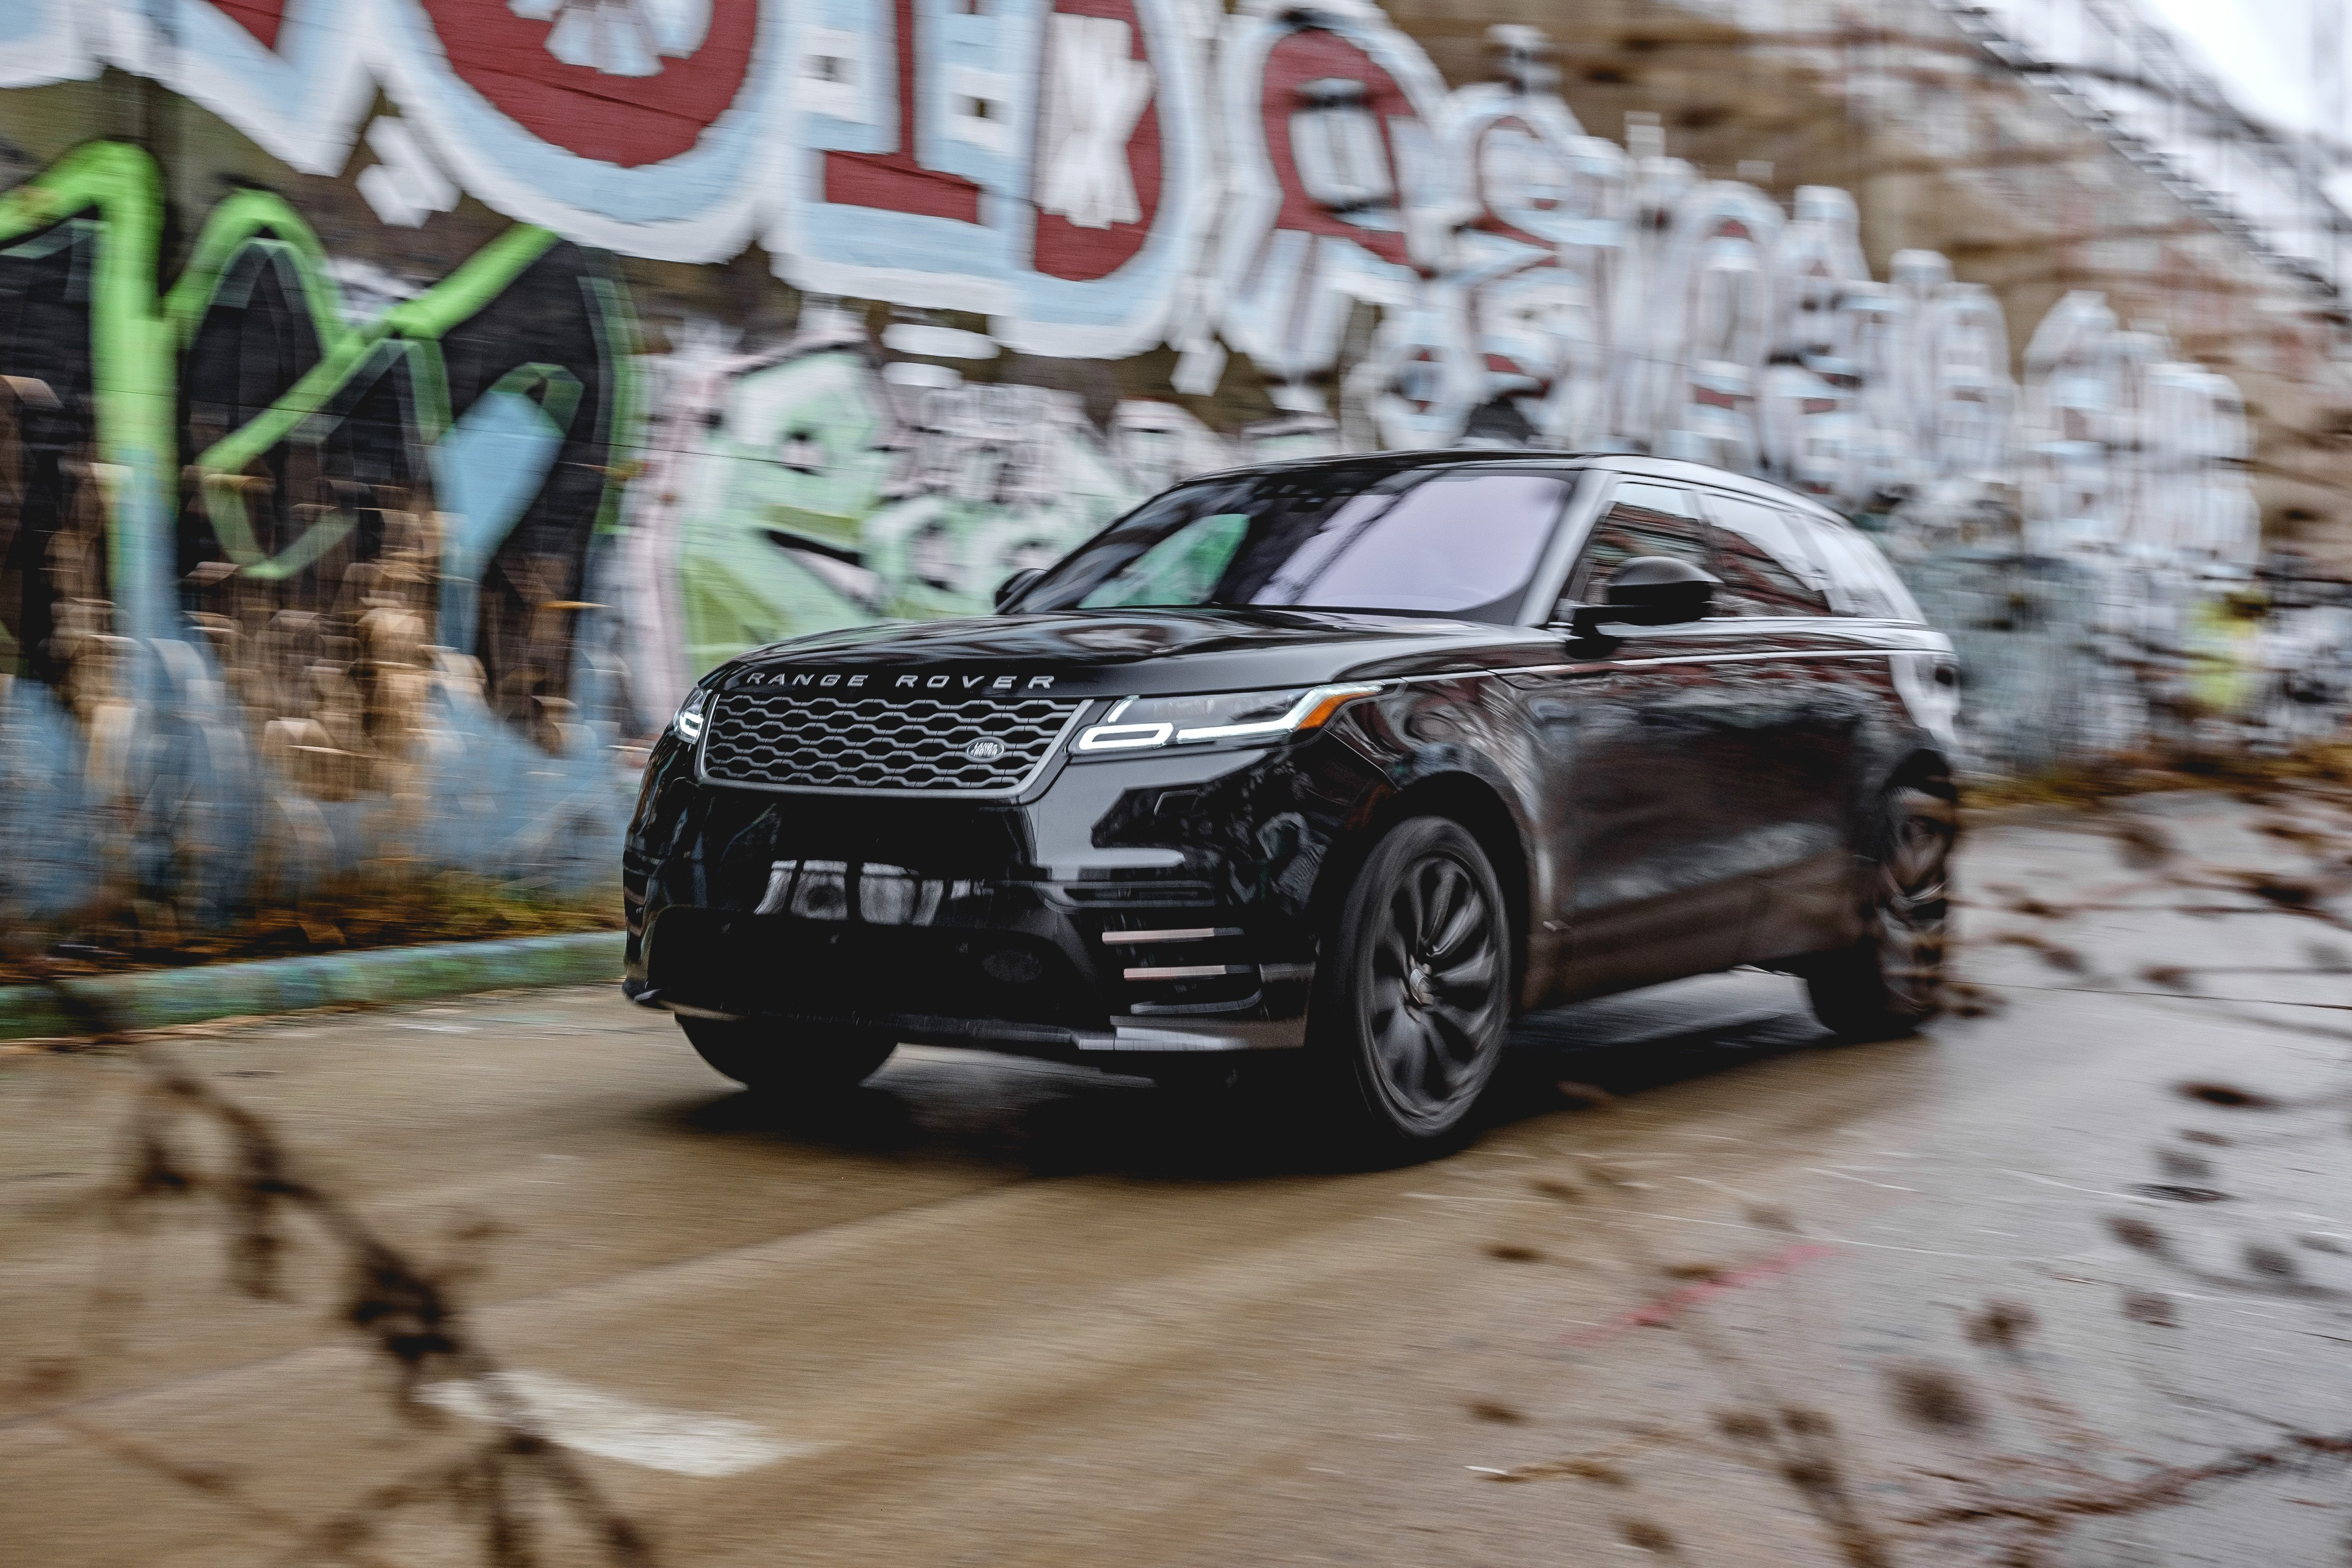 How Reliable Is The 2018 Range Rover Velar